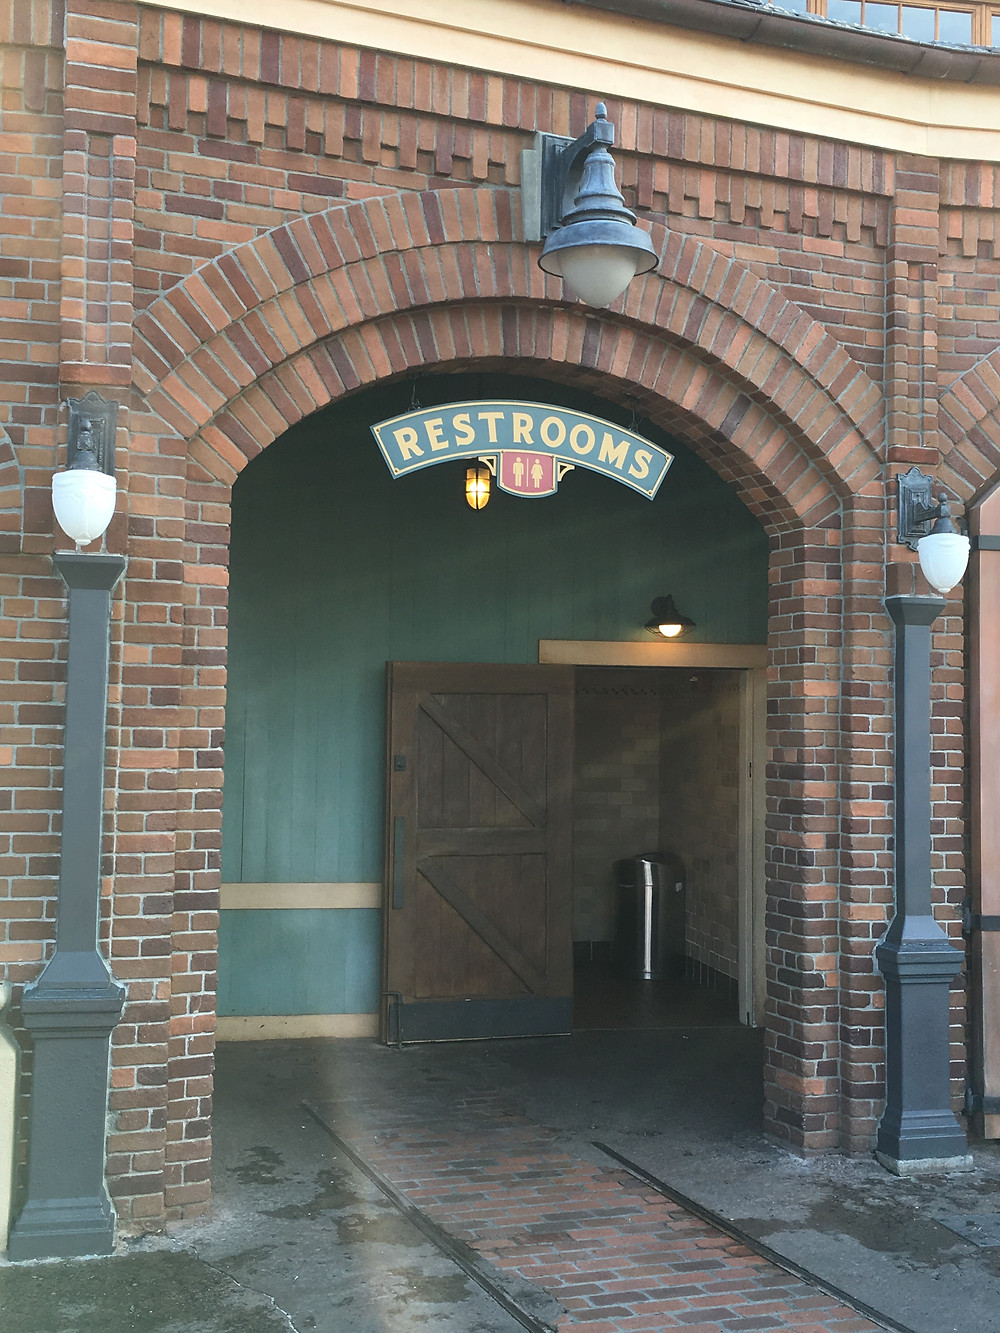 Entrance to Storybook Circus Restrooms